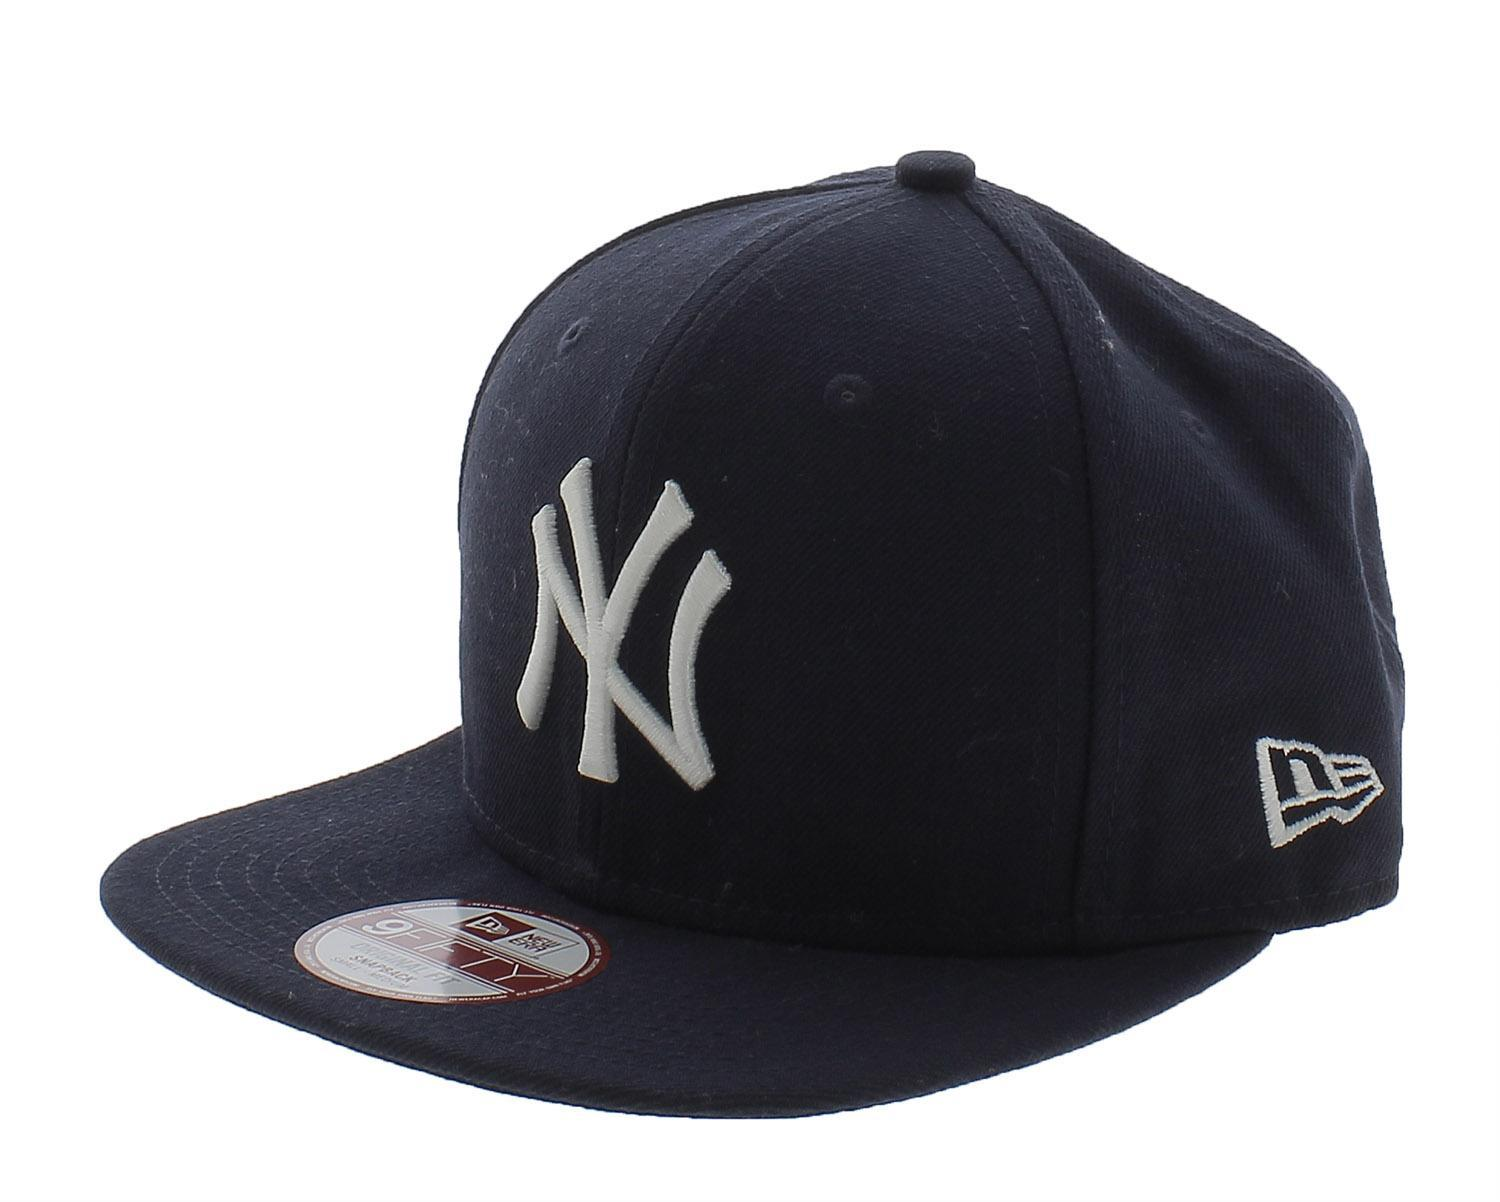 new era new era league basic 9 nevyyan cappello blu